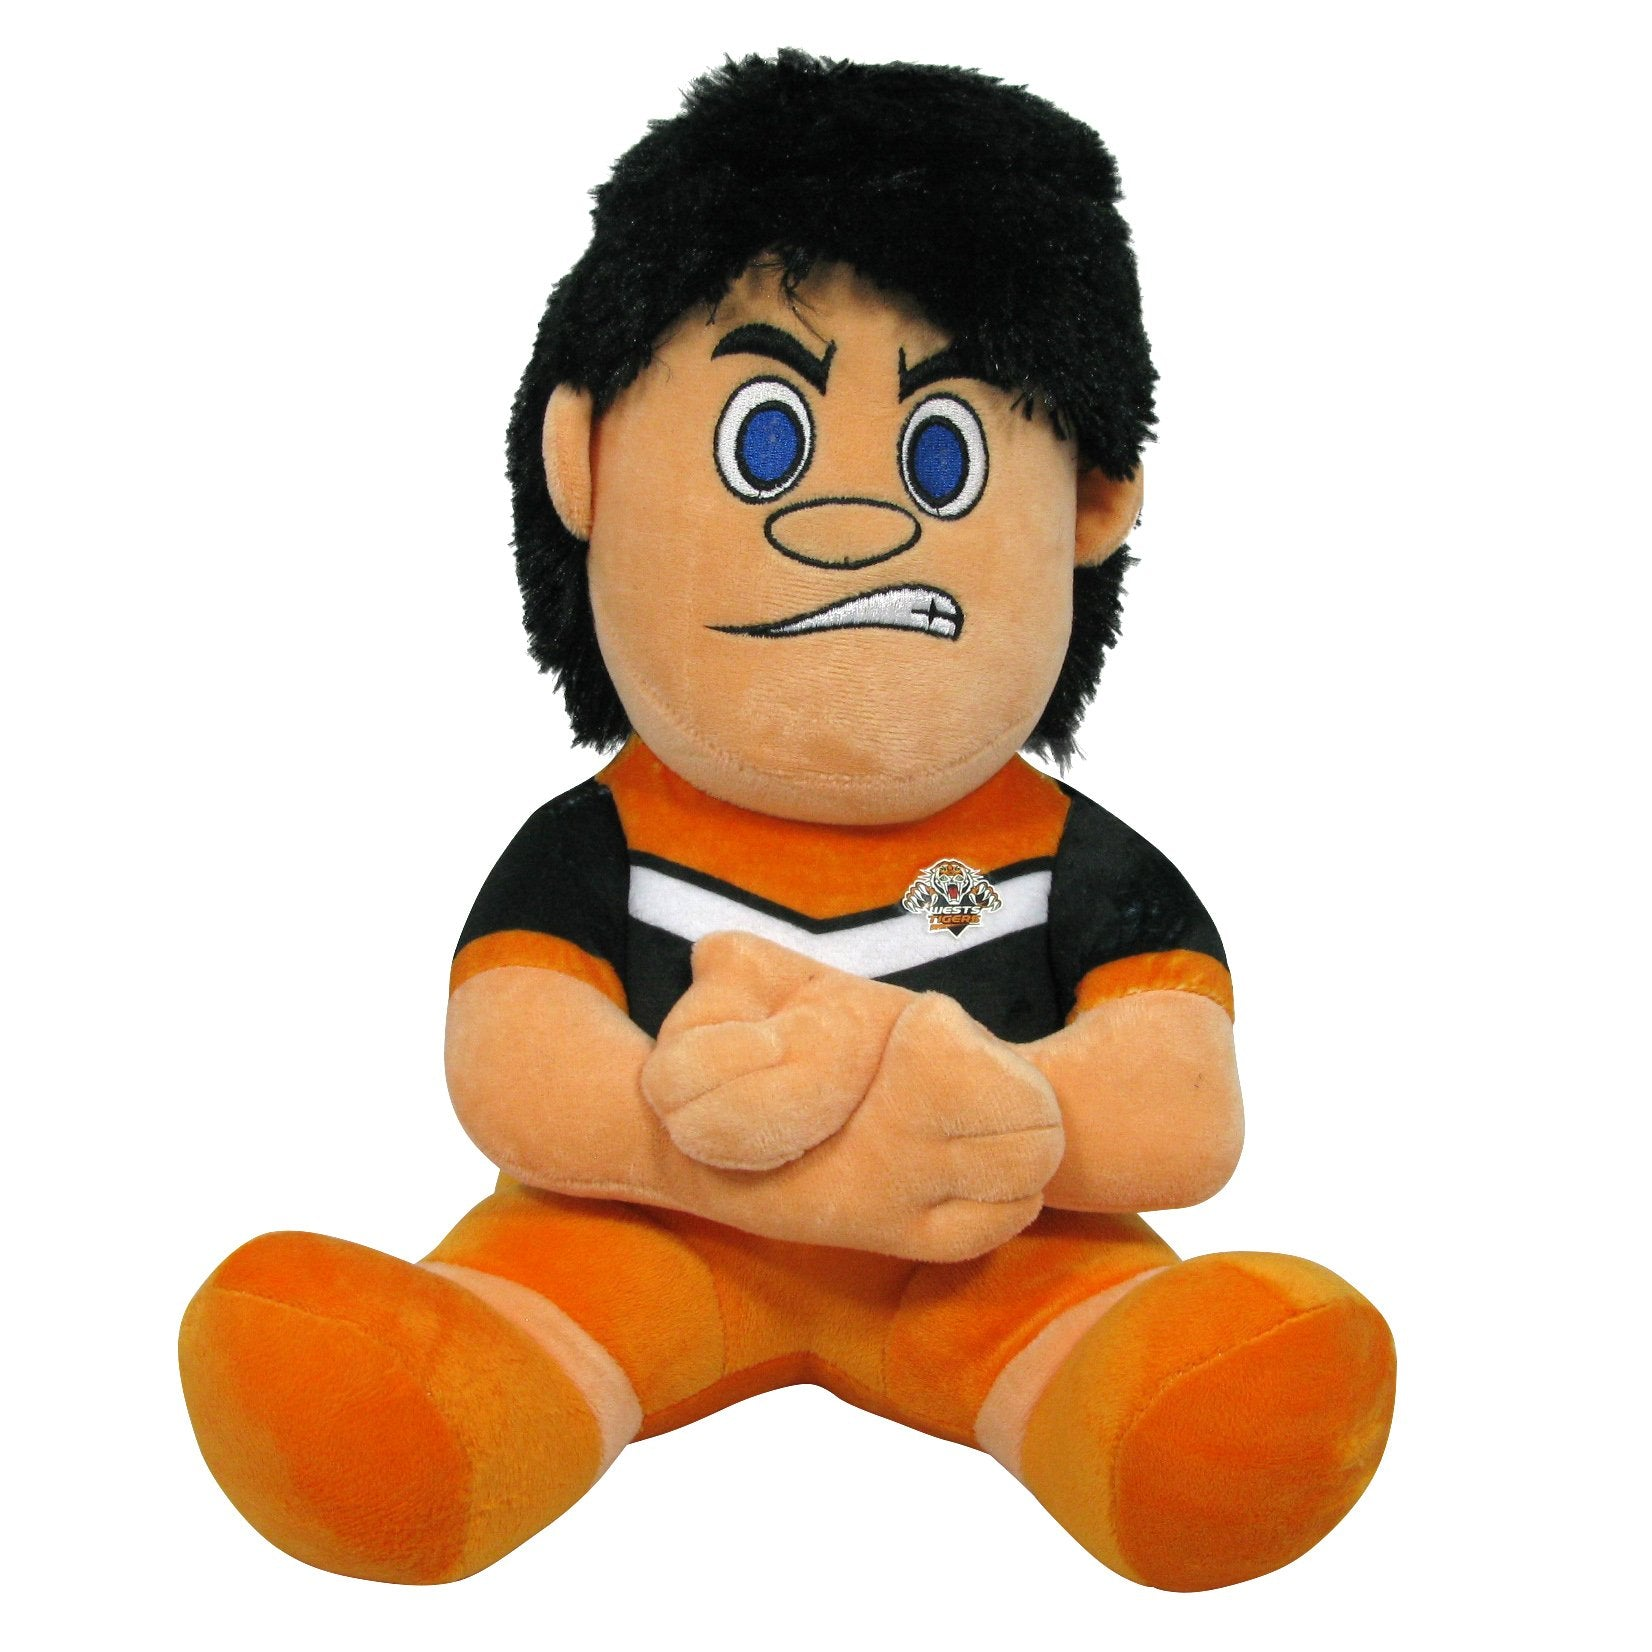 NRL PLAYER DOOR STOP TIGERS